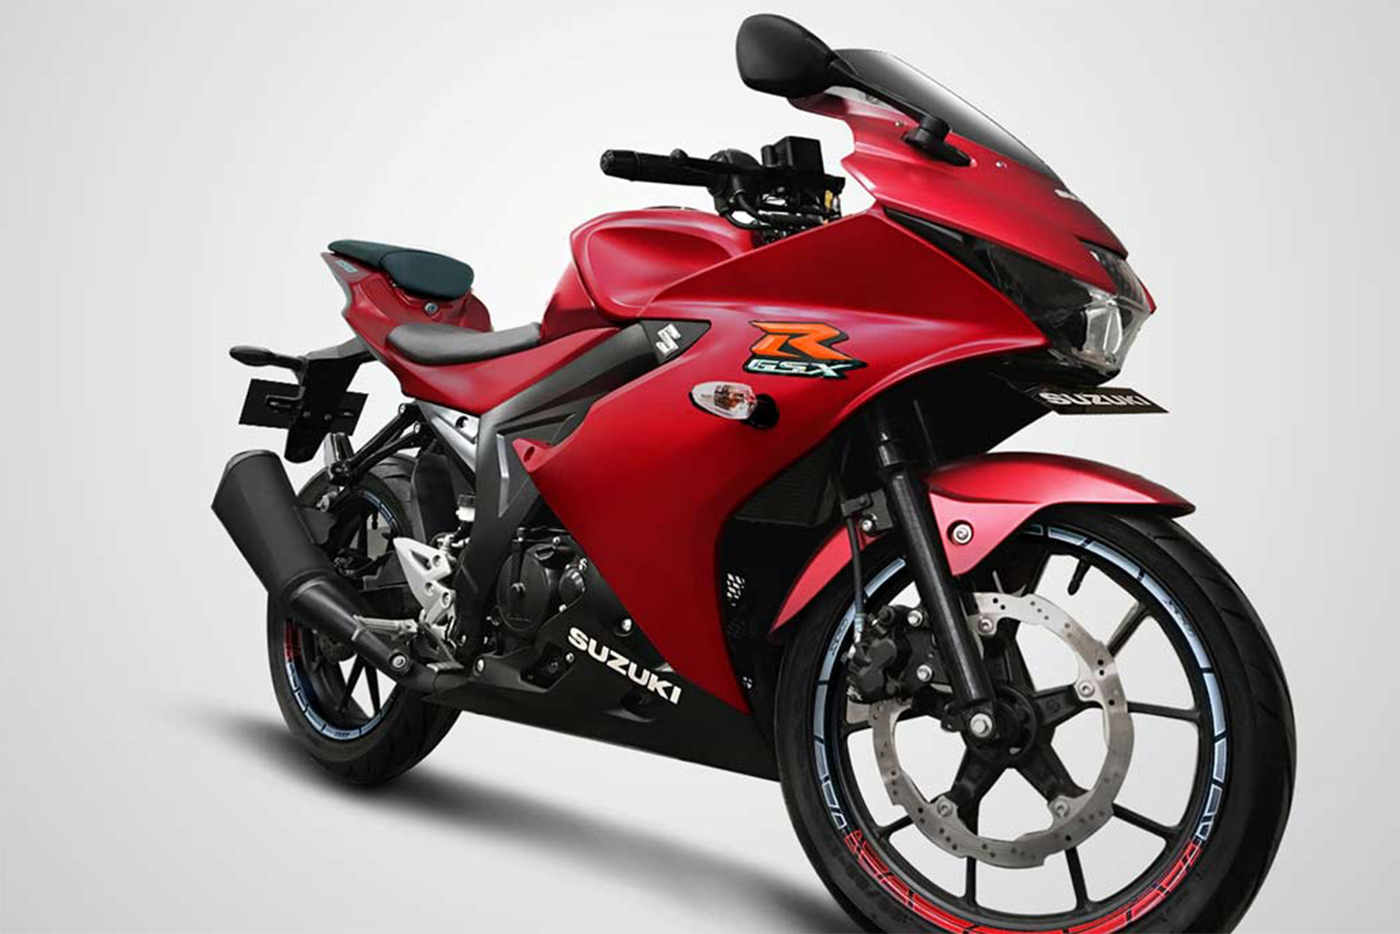 suzuki-gsx-r150-matte-summer-red-3.jpg